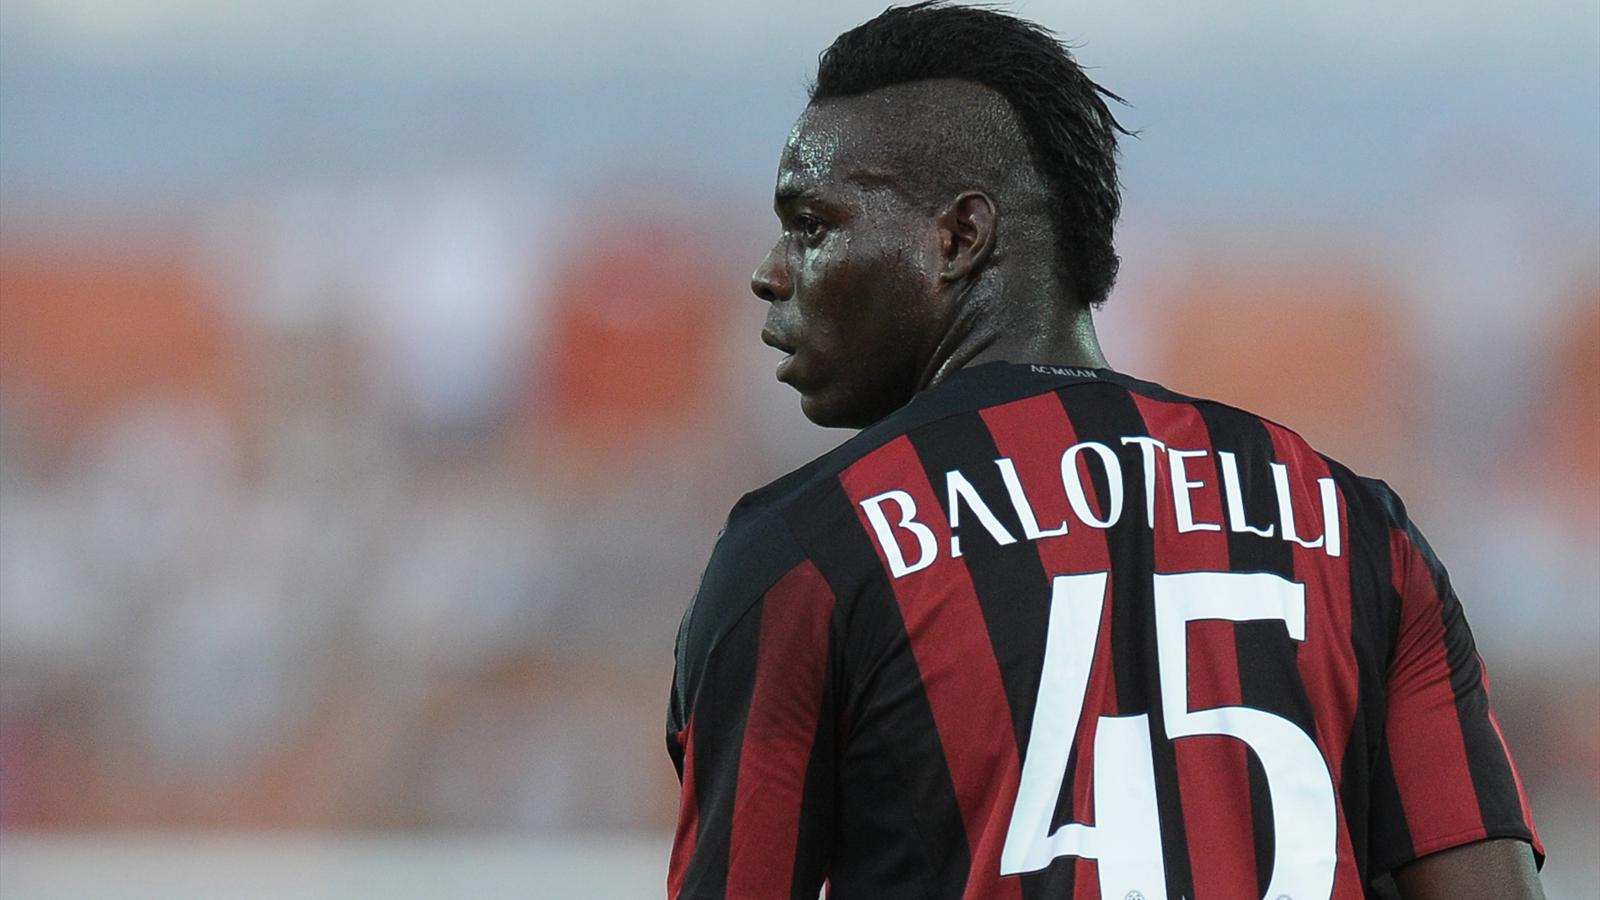 Mario Balotelli 'a great player', says AC Milan's Adriano - Serie A 2015-2016 - Football ...